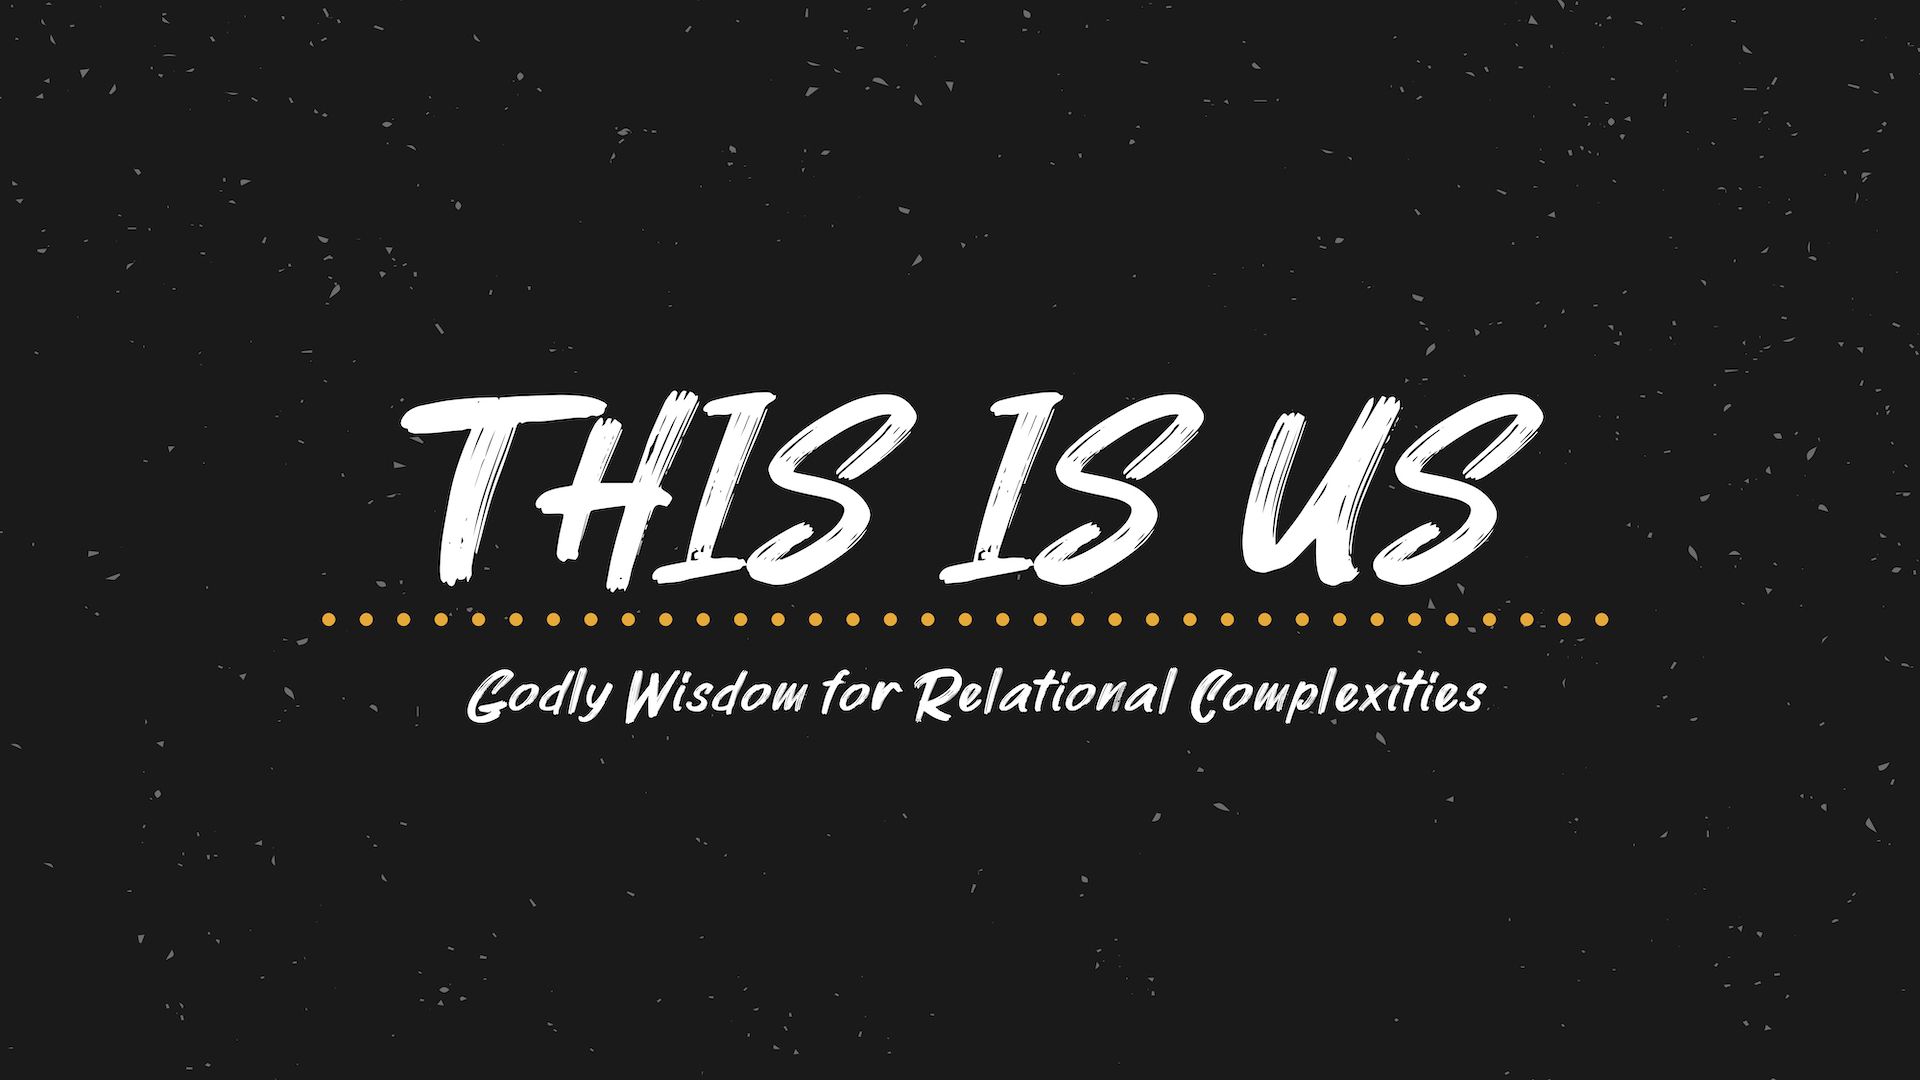 This is us - LET'S LEARN ABOUT RELATIONSHIPS. WE KNOW THEY CAN BE COMPLEX, BUT GOD'S WORD GIVES US WISDOM TO NAVIGATE THEM.